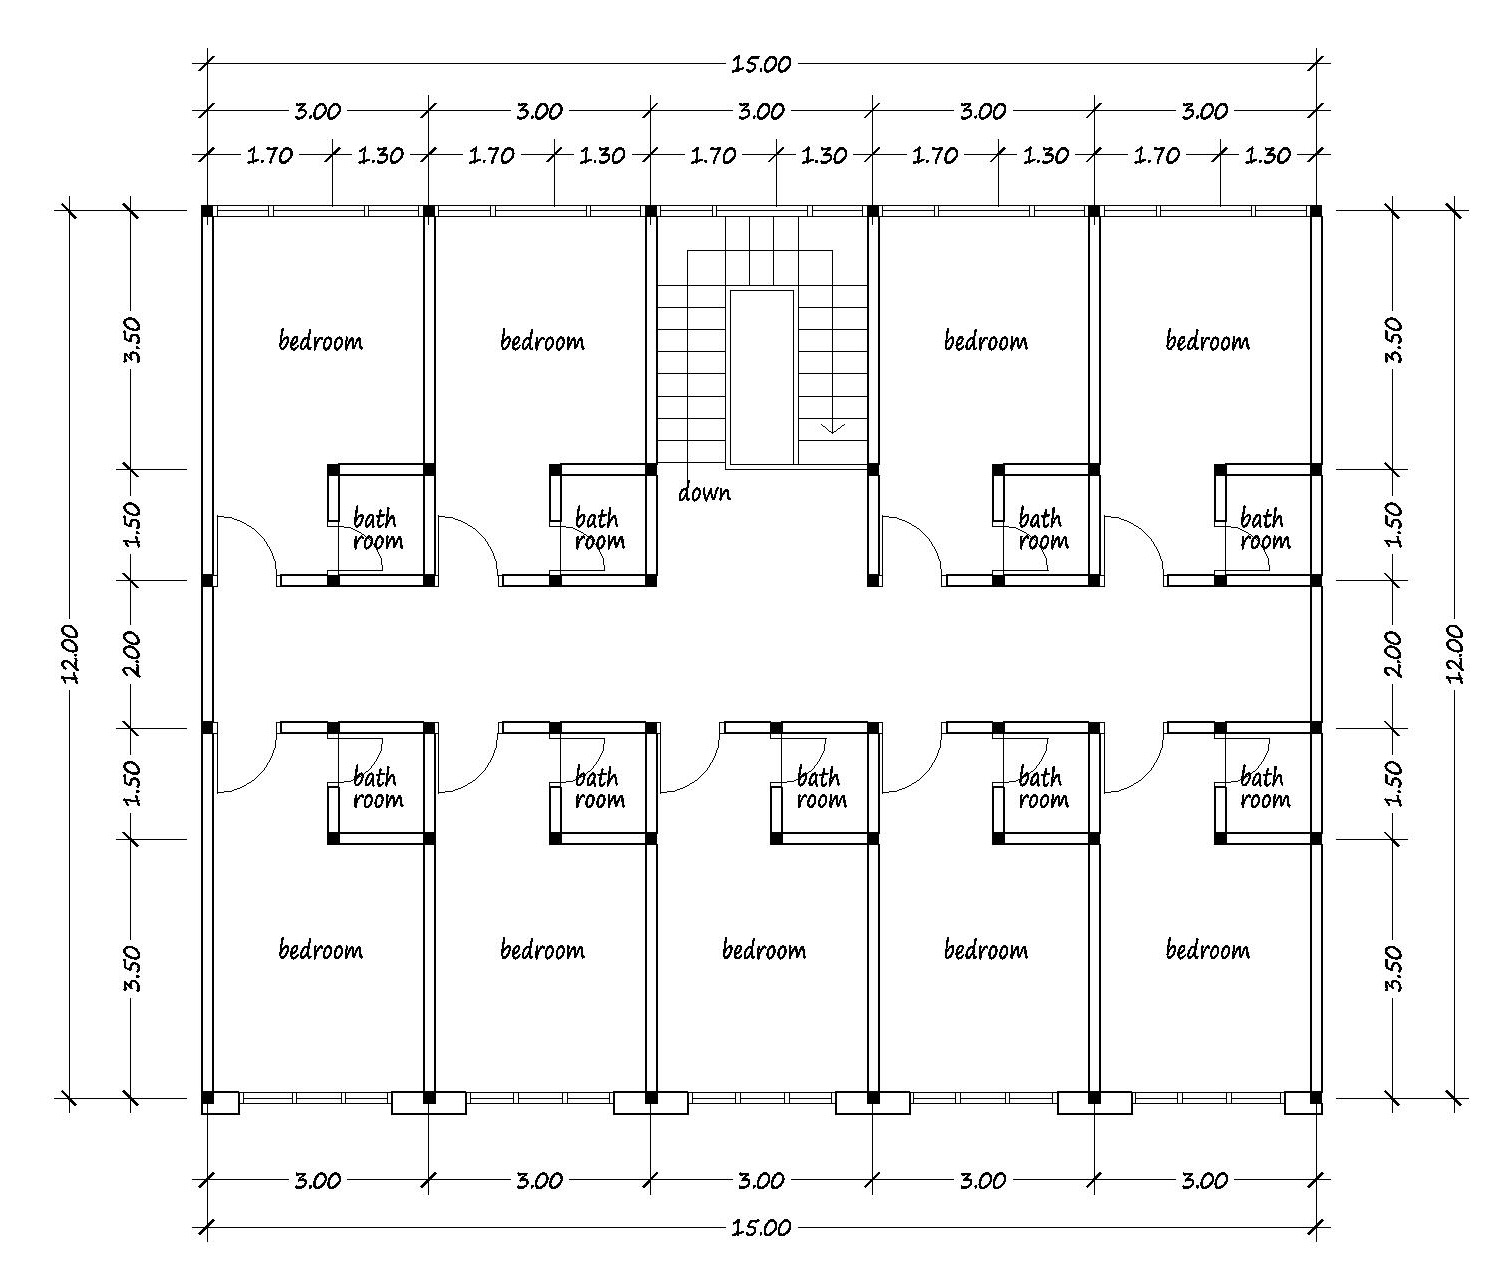 House plans for you plans image design and about house for Building design plans